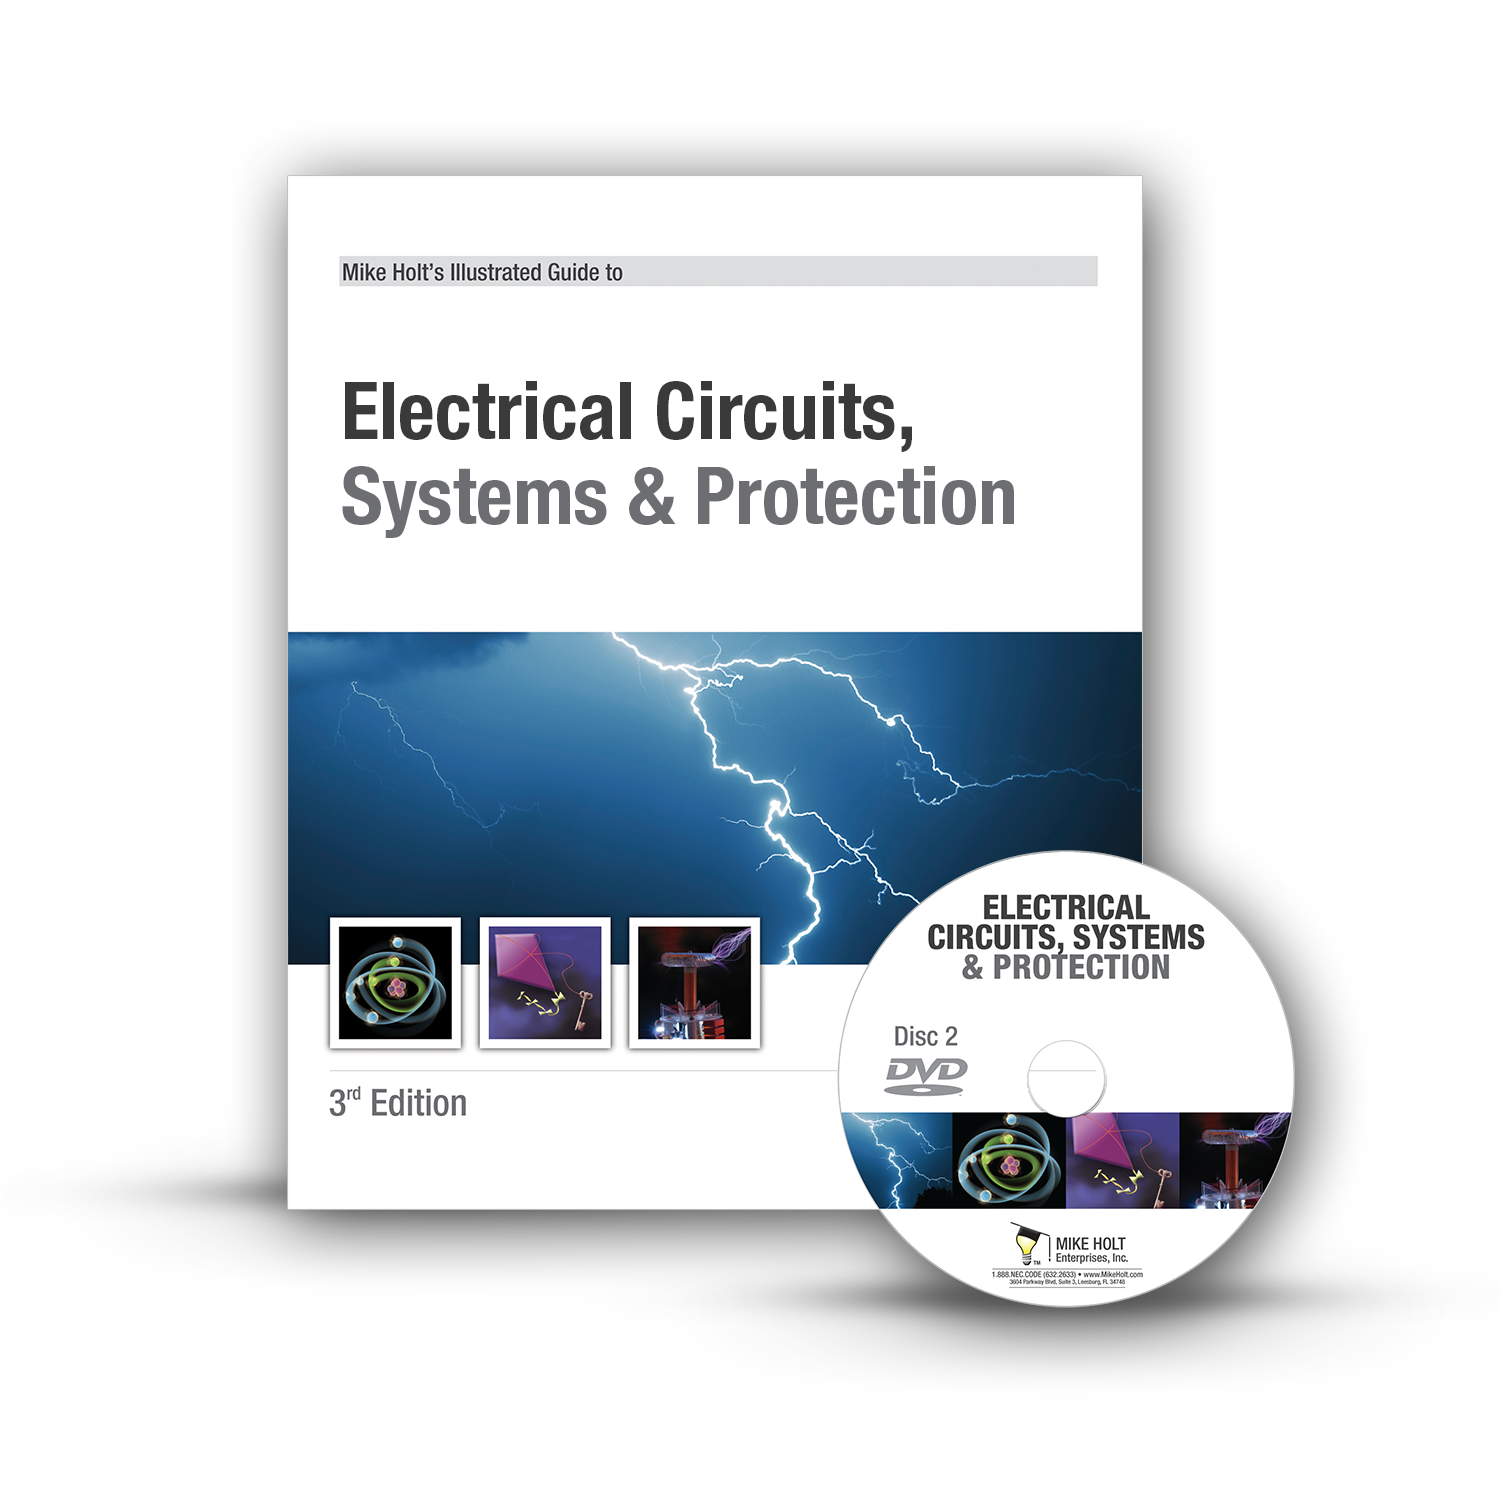 Mike Holt Available Short-Circuit Current